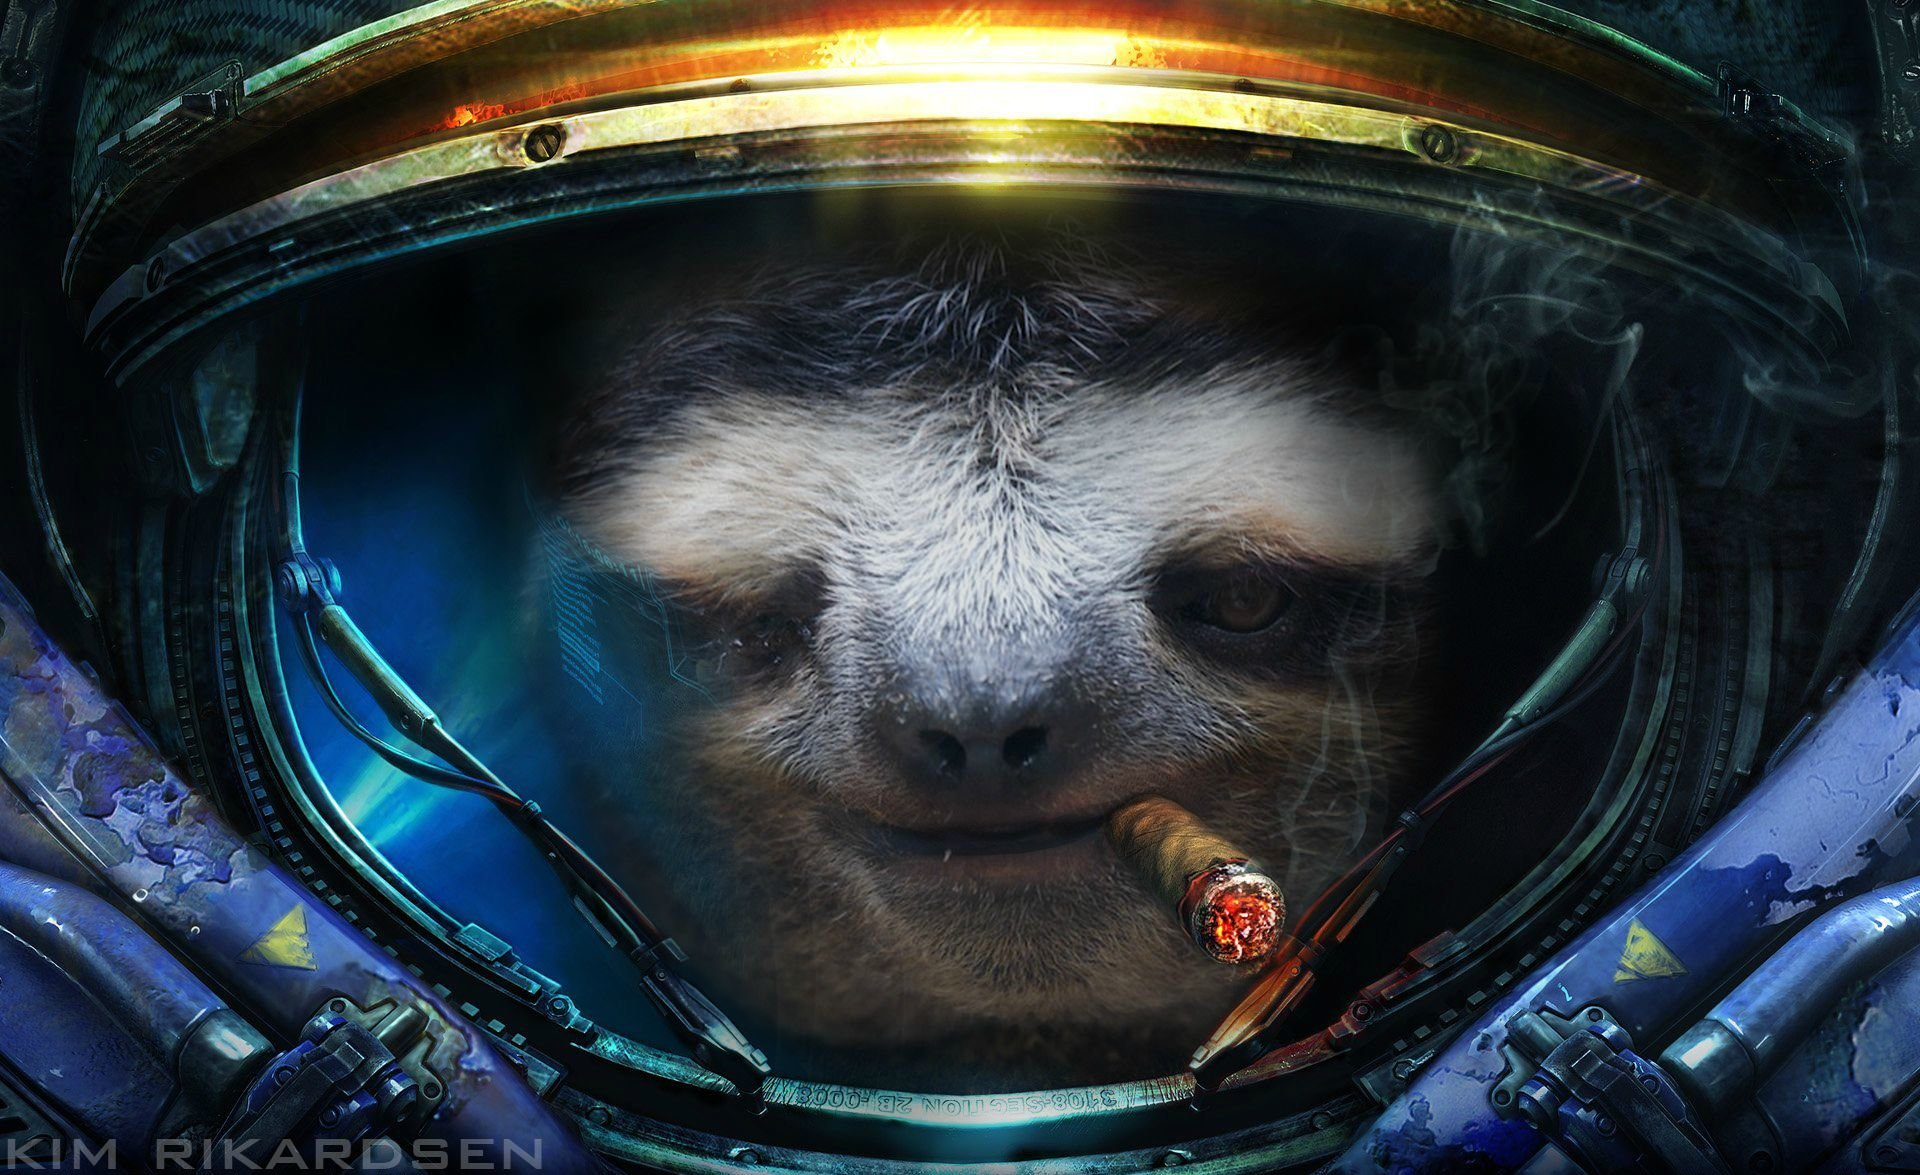 sloth astronaut picture - HD 1920×1080